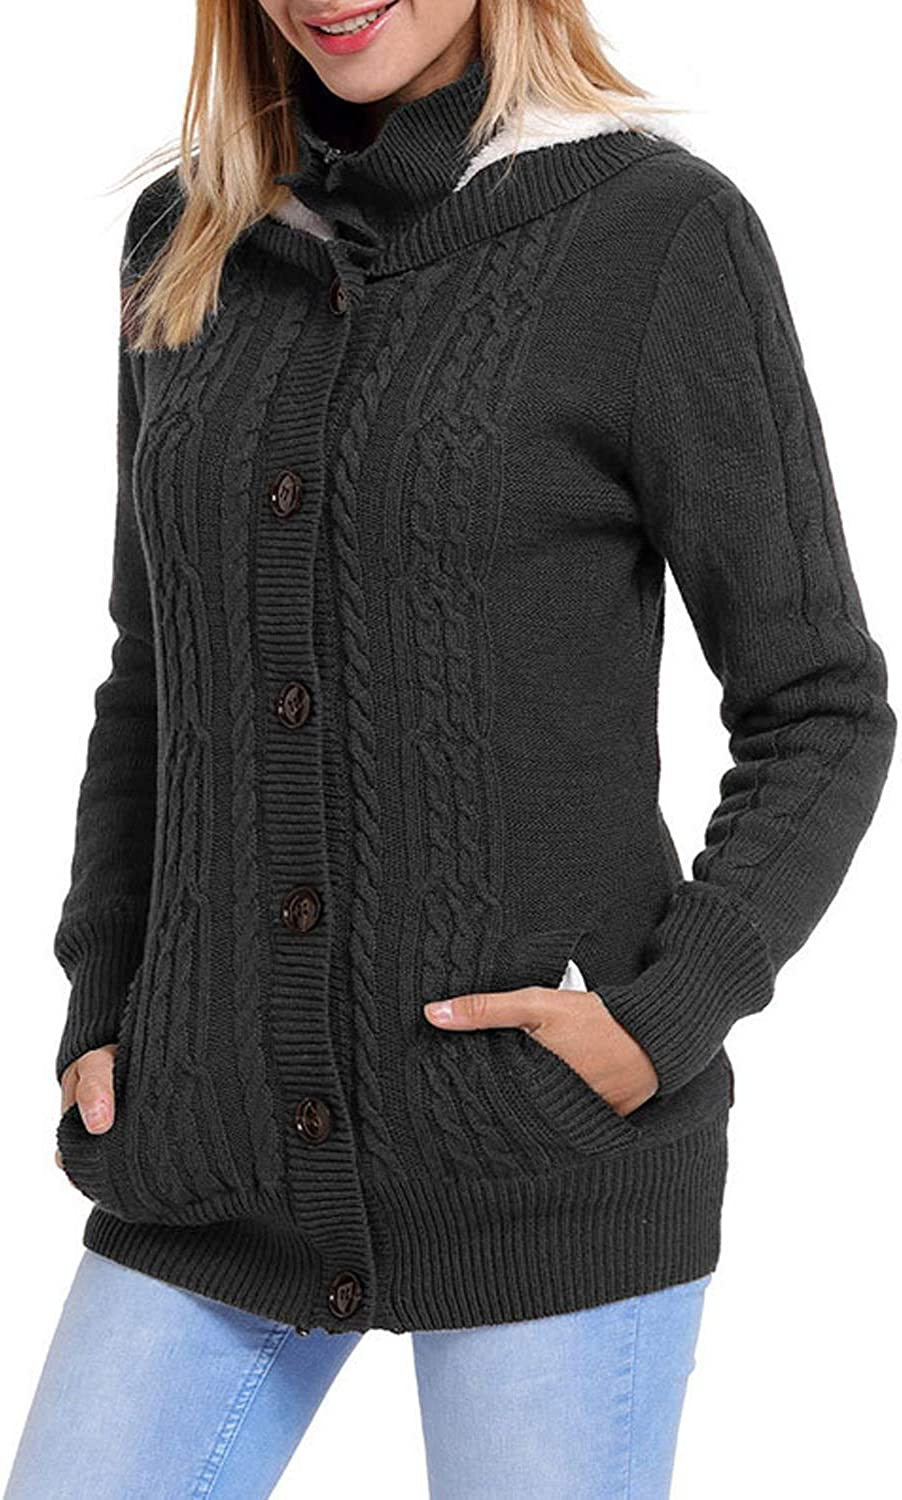 Carriemeow Women's Hooded Long Sleeve Solid Button Fleece Lined Knit Cardigan Coat